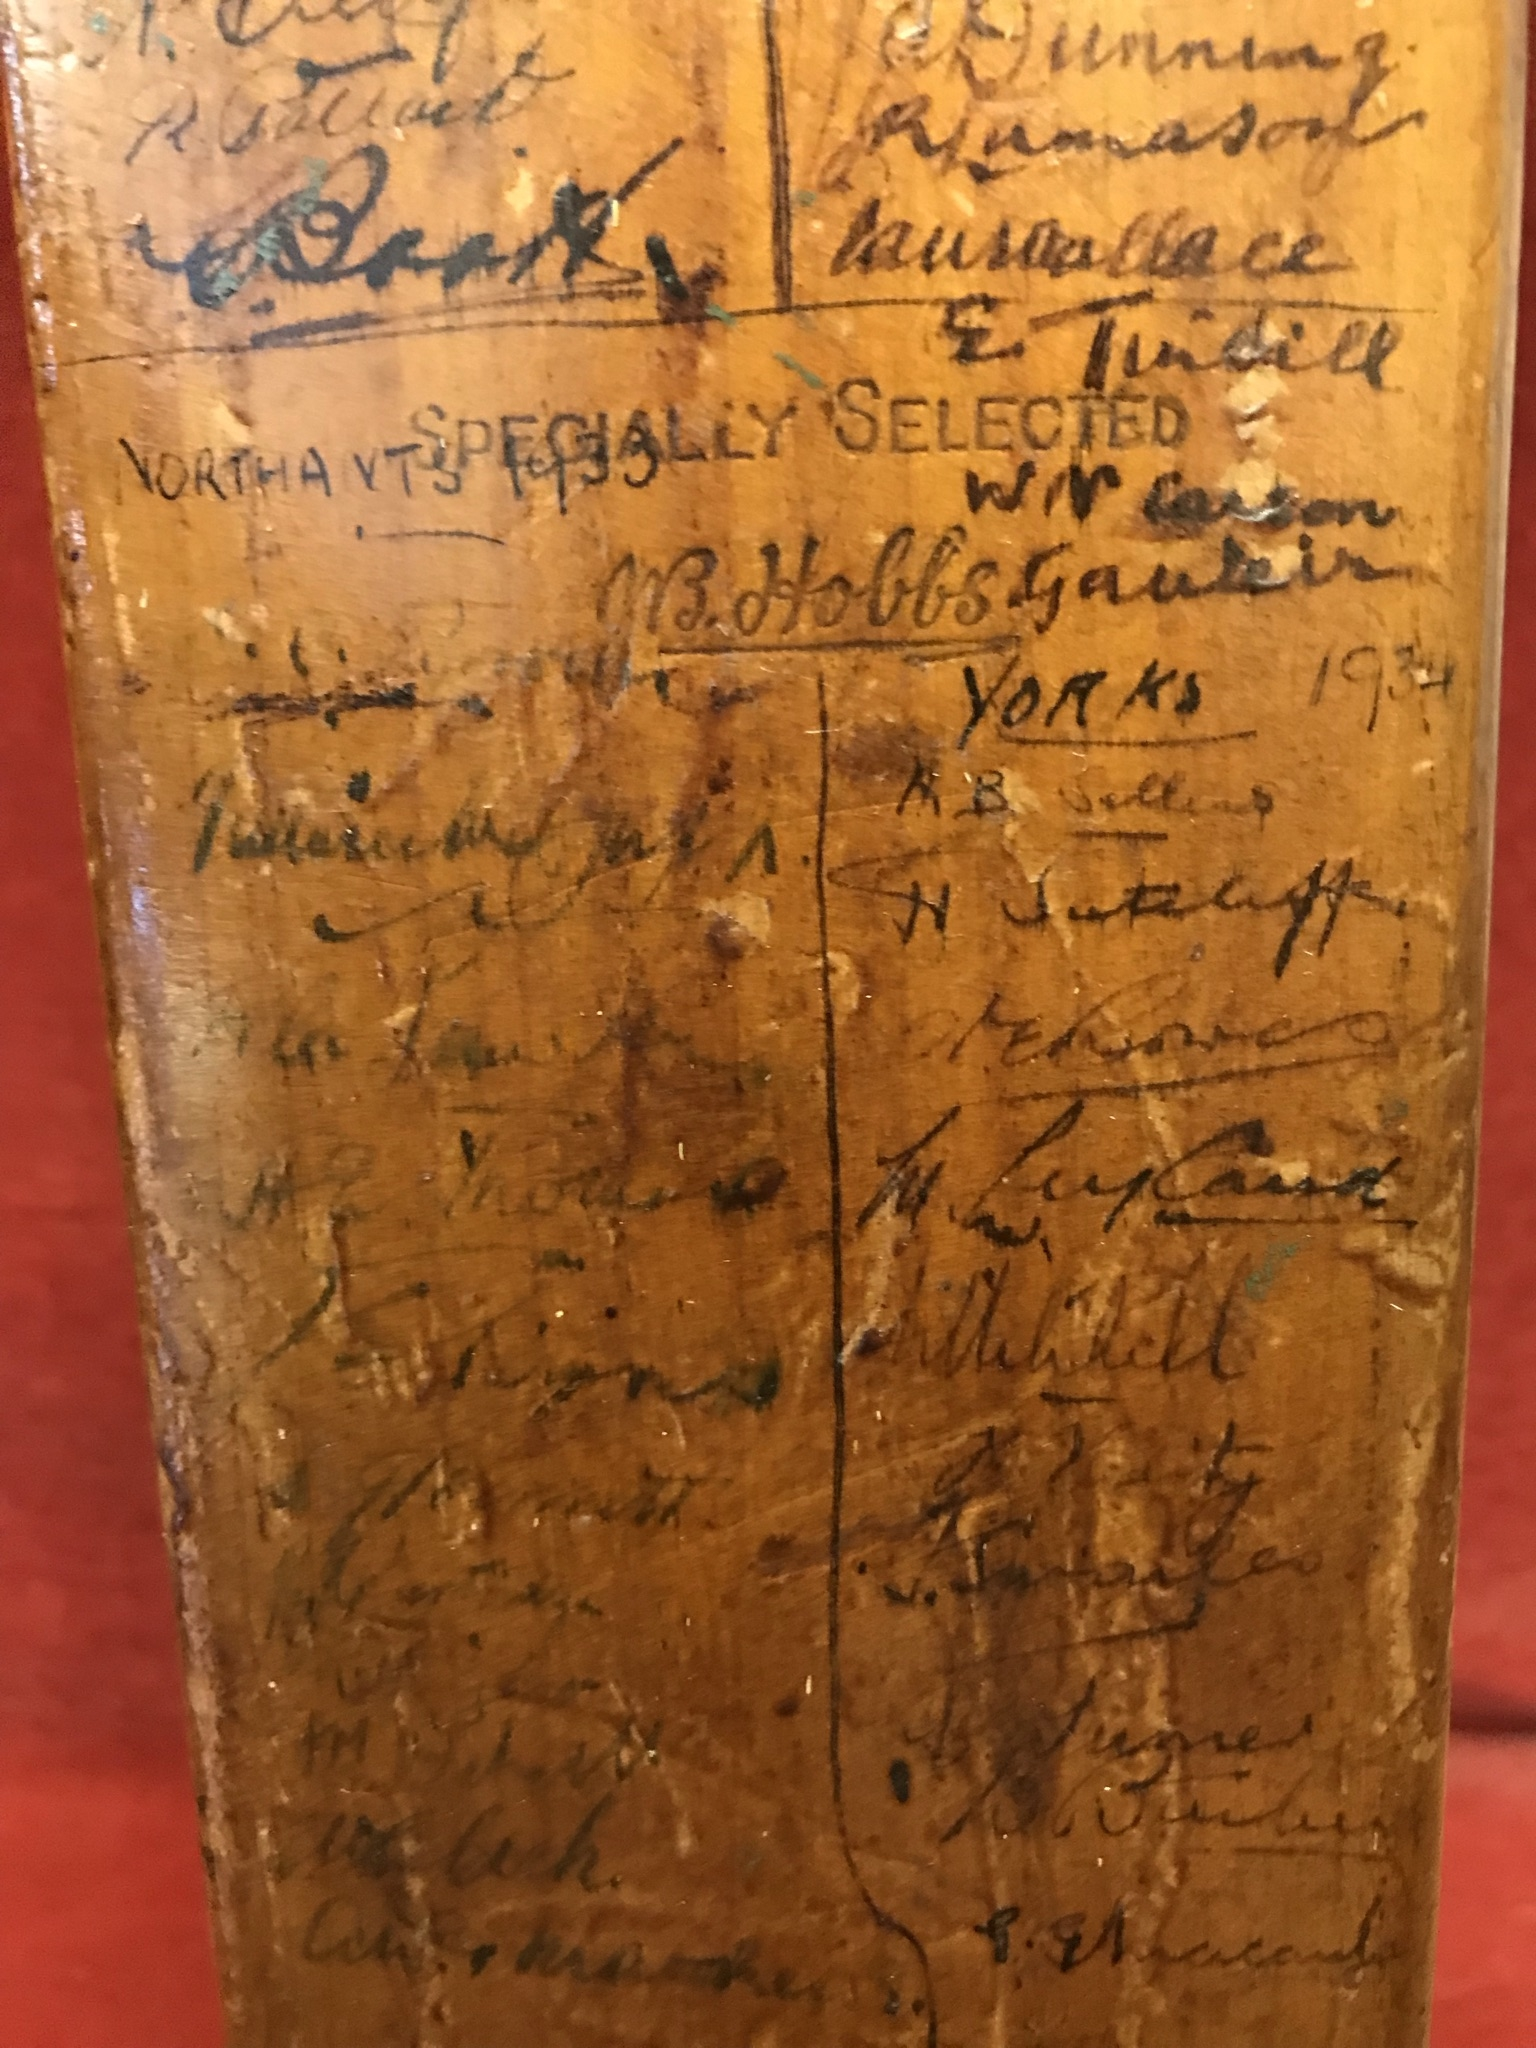 A Hobbs No 6 Cricket Bat autographed with 1934 Australia including Bradman, Chipperfield, O' - Image 5 of 7